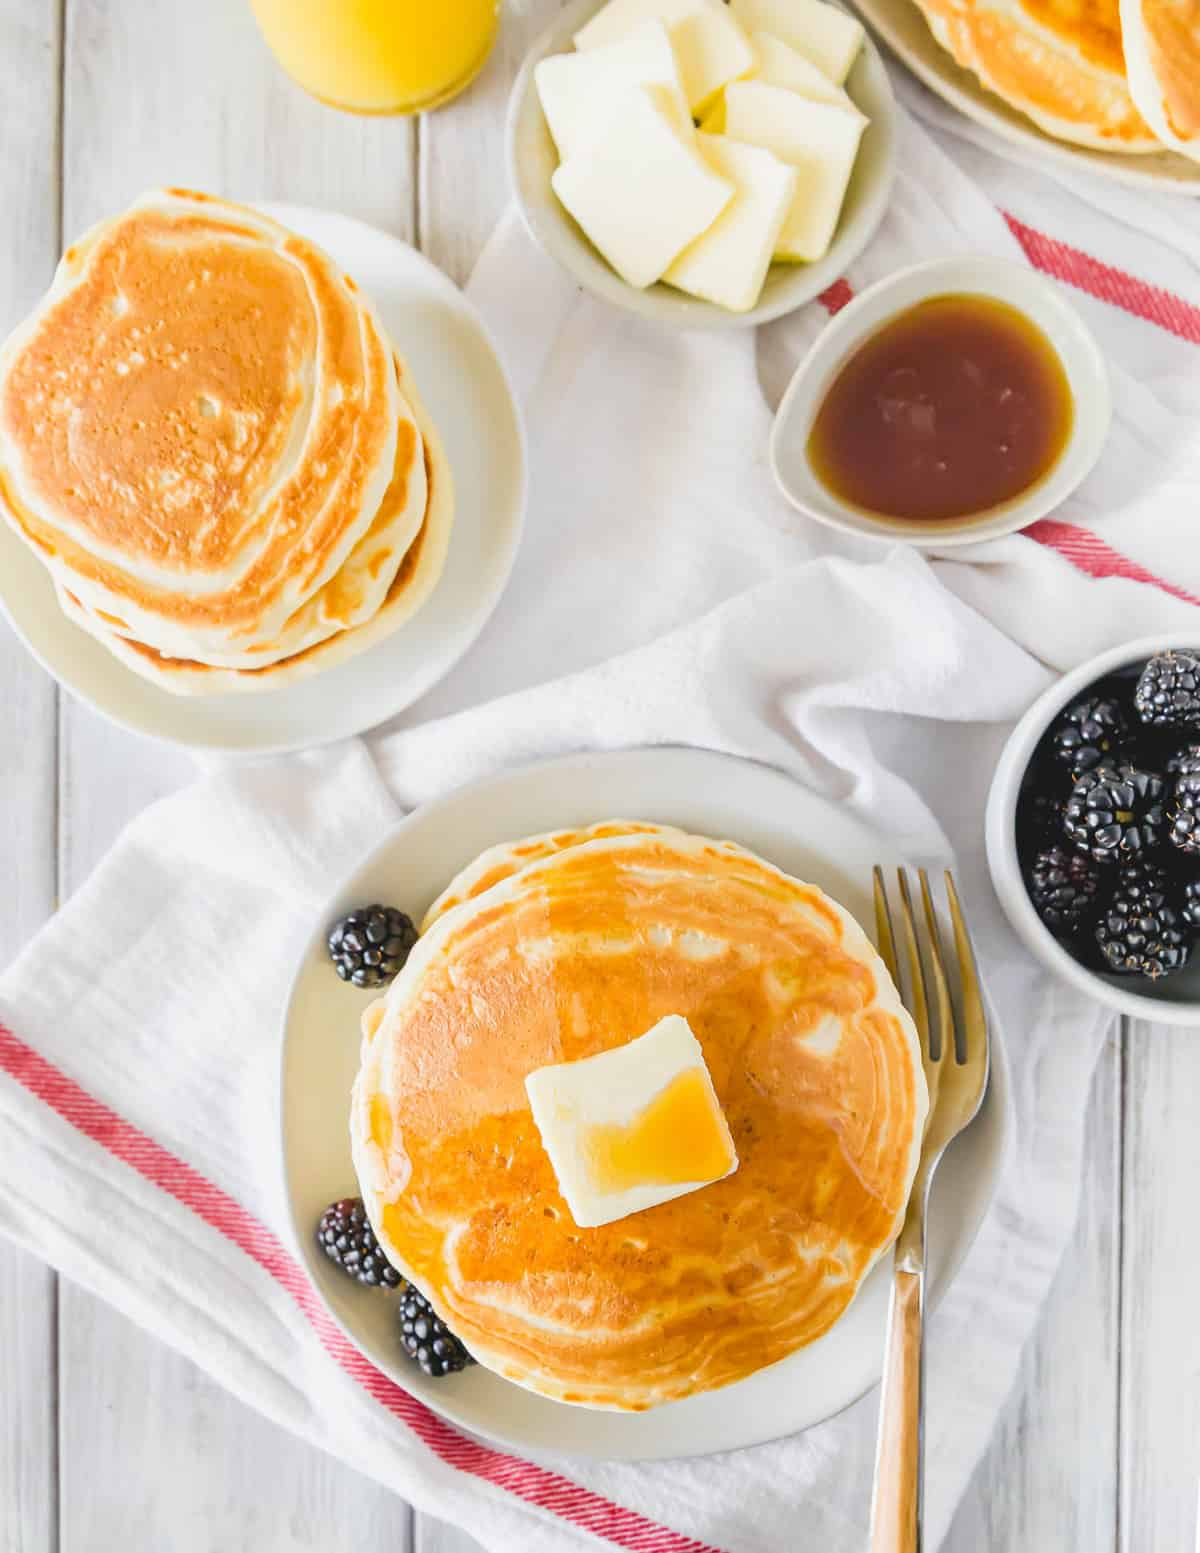 Overhead view of pancakes, blackberries, and syrup.